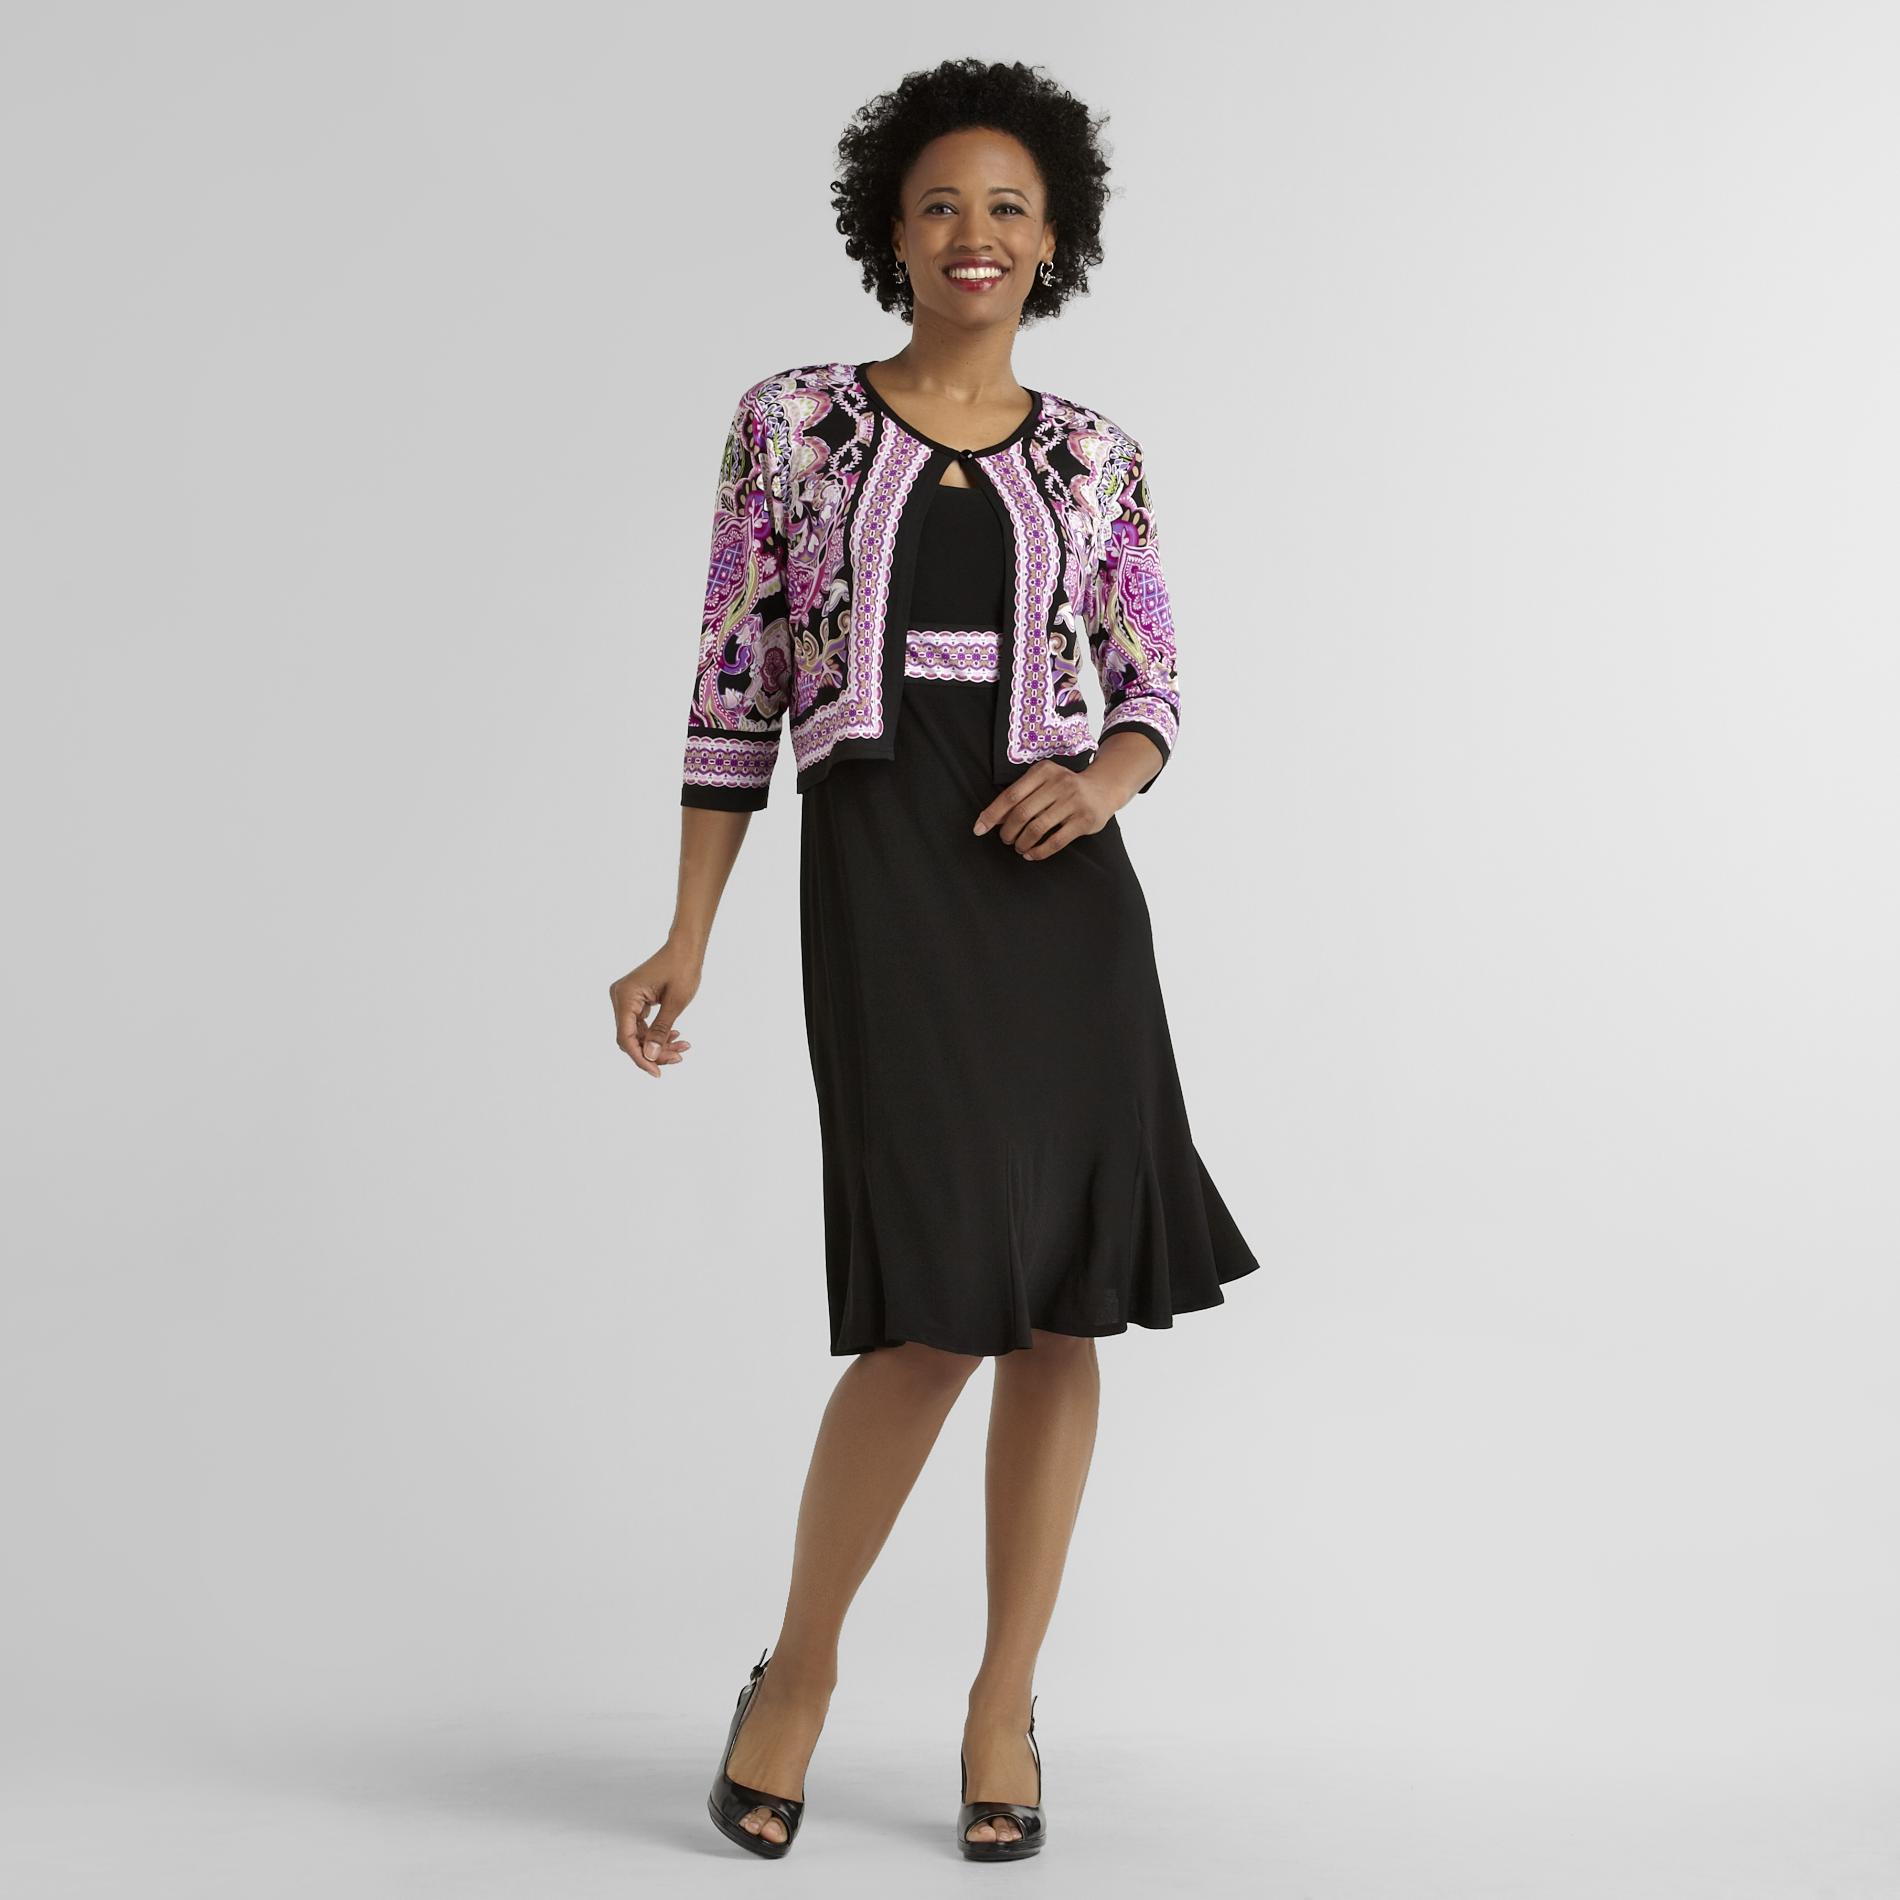 Women's Knit Dress & Jacket - Medallion at Sears.com